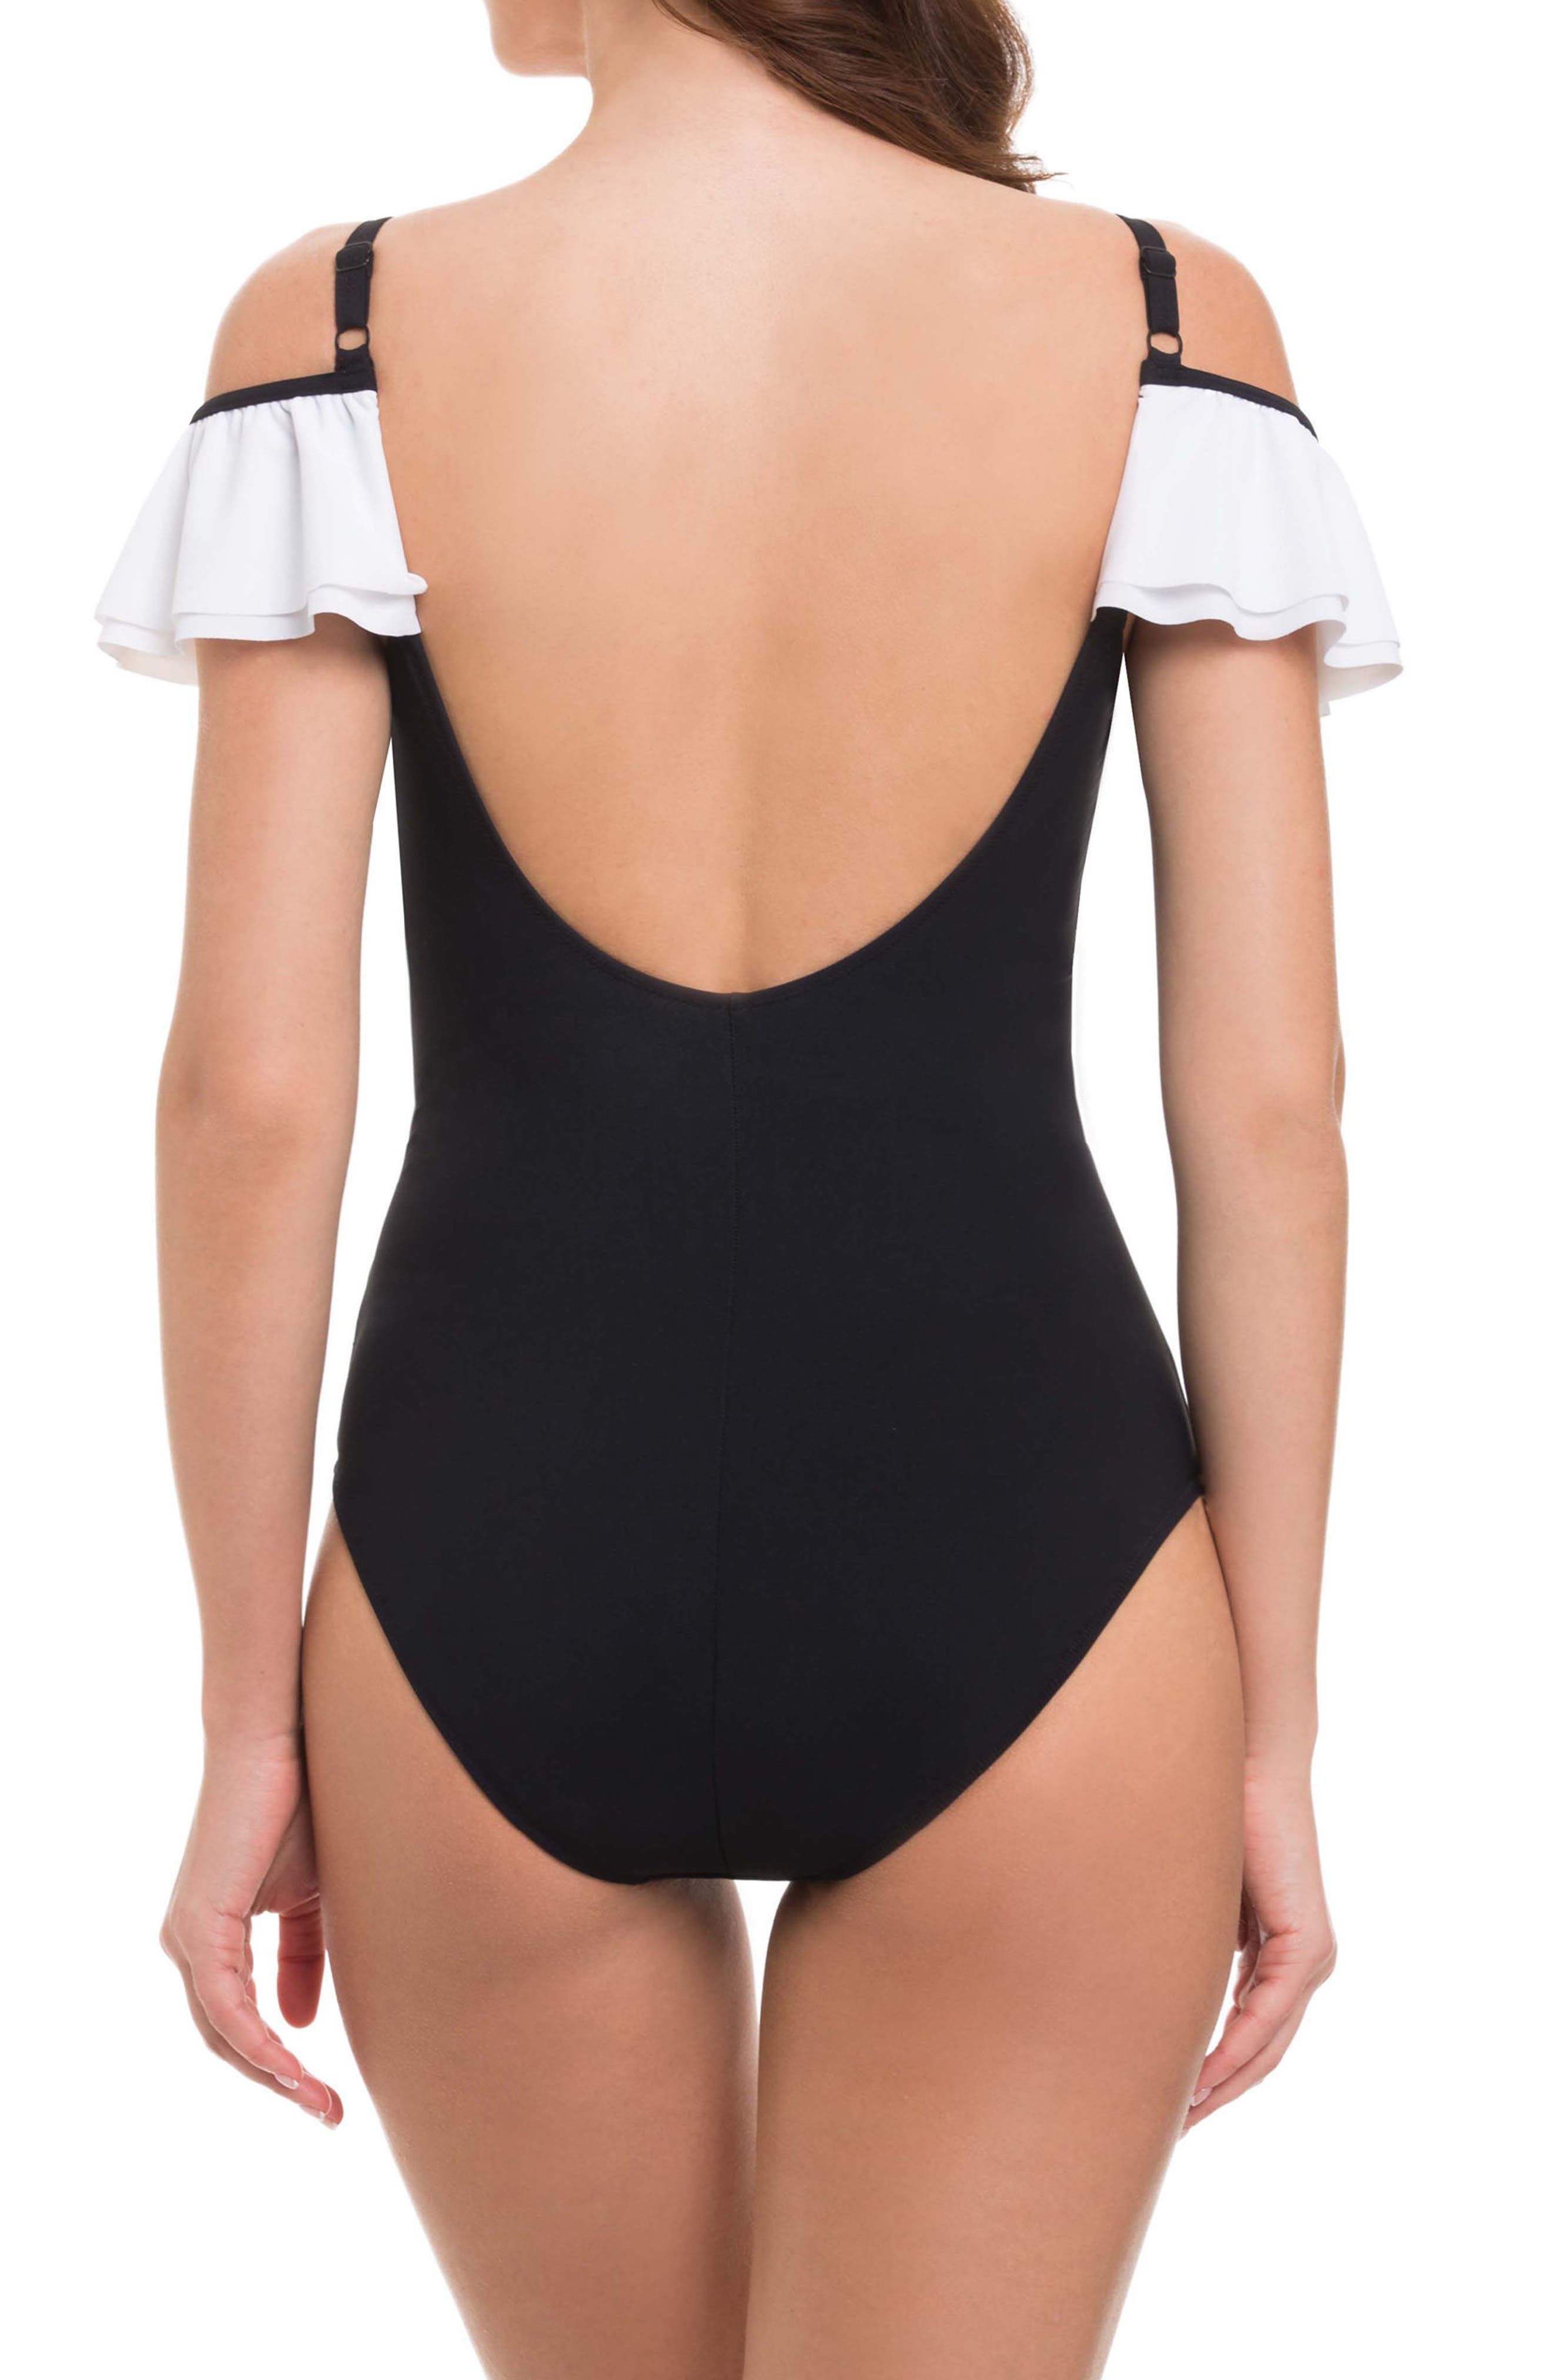 Off the Shoulder One-Piece Swimsuit,                             Alternate thumbnail 2, color,                             Black/ White